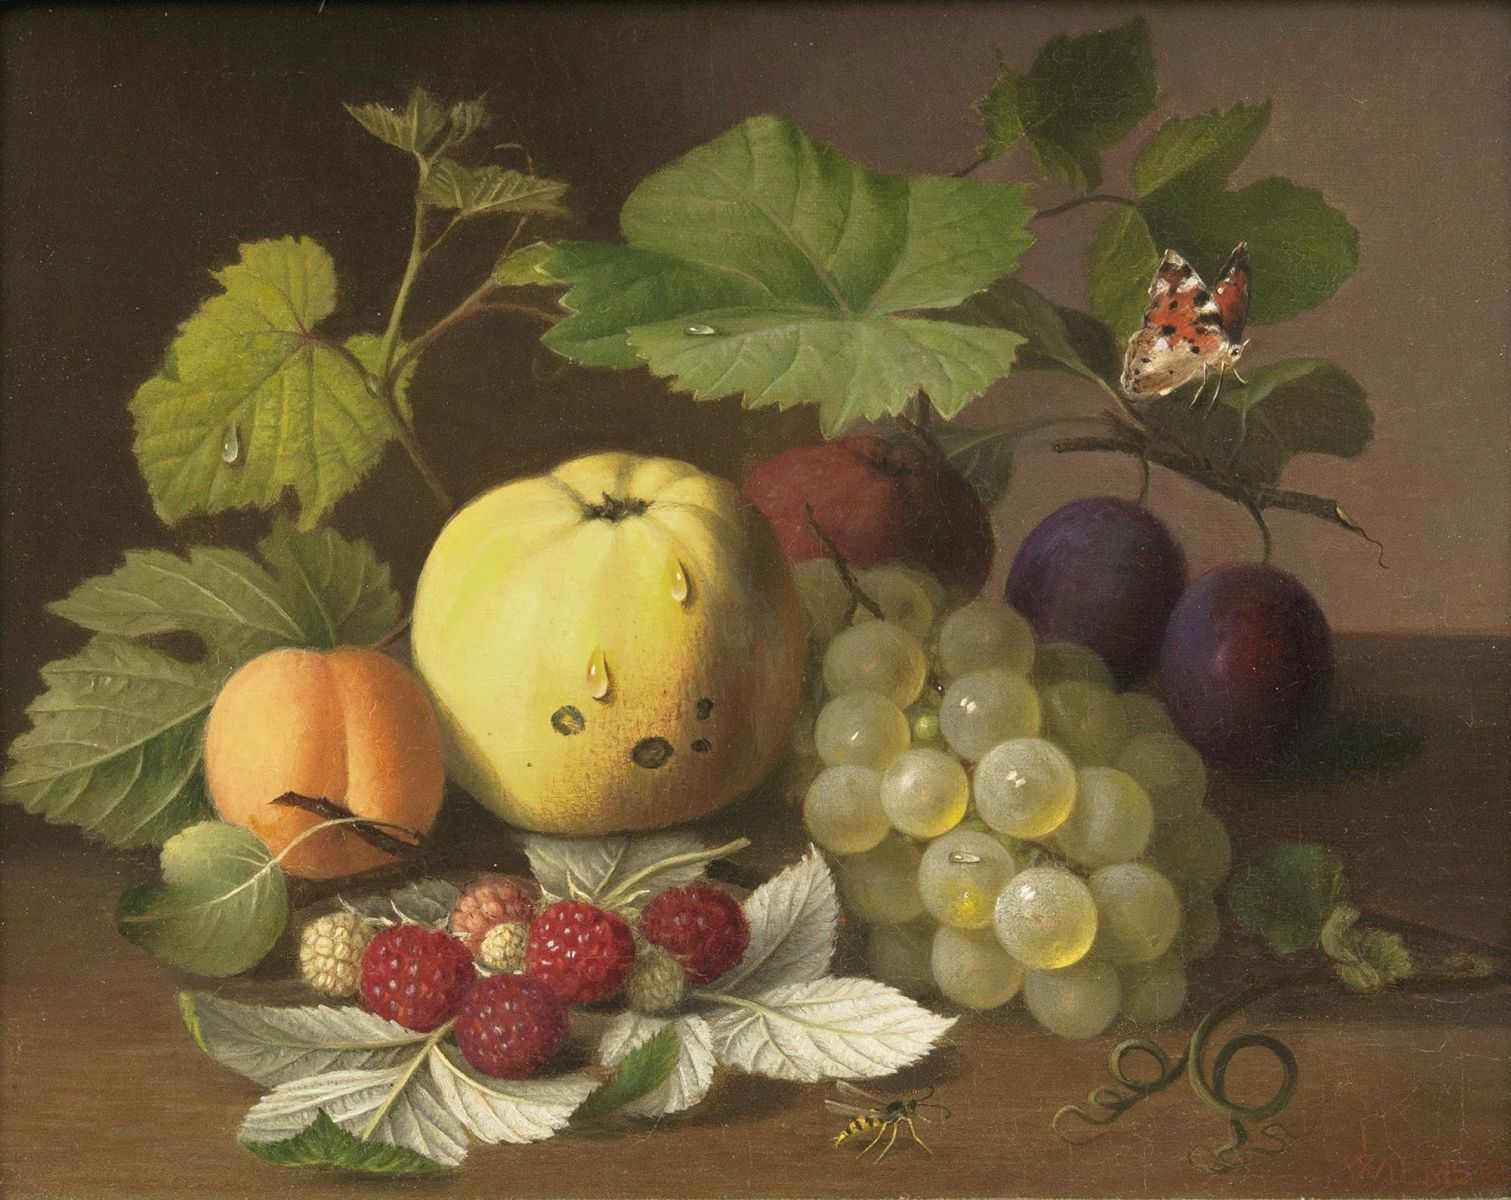 Still Life with Fruits and Insects.